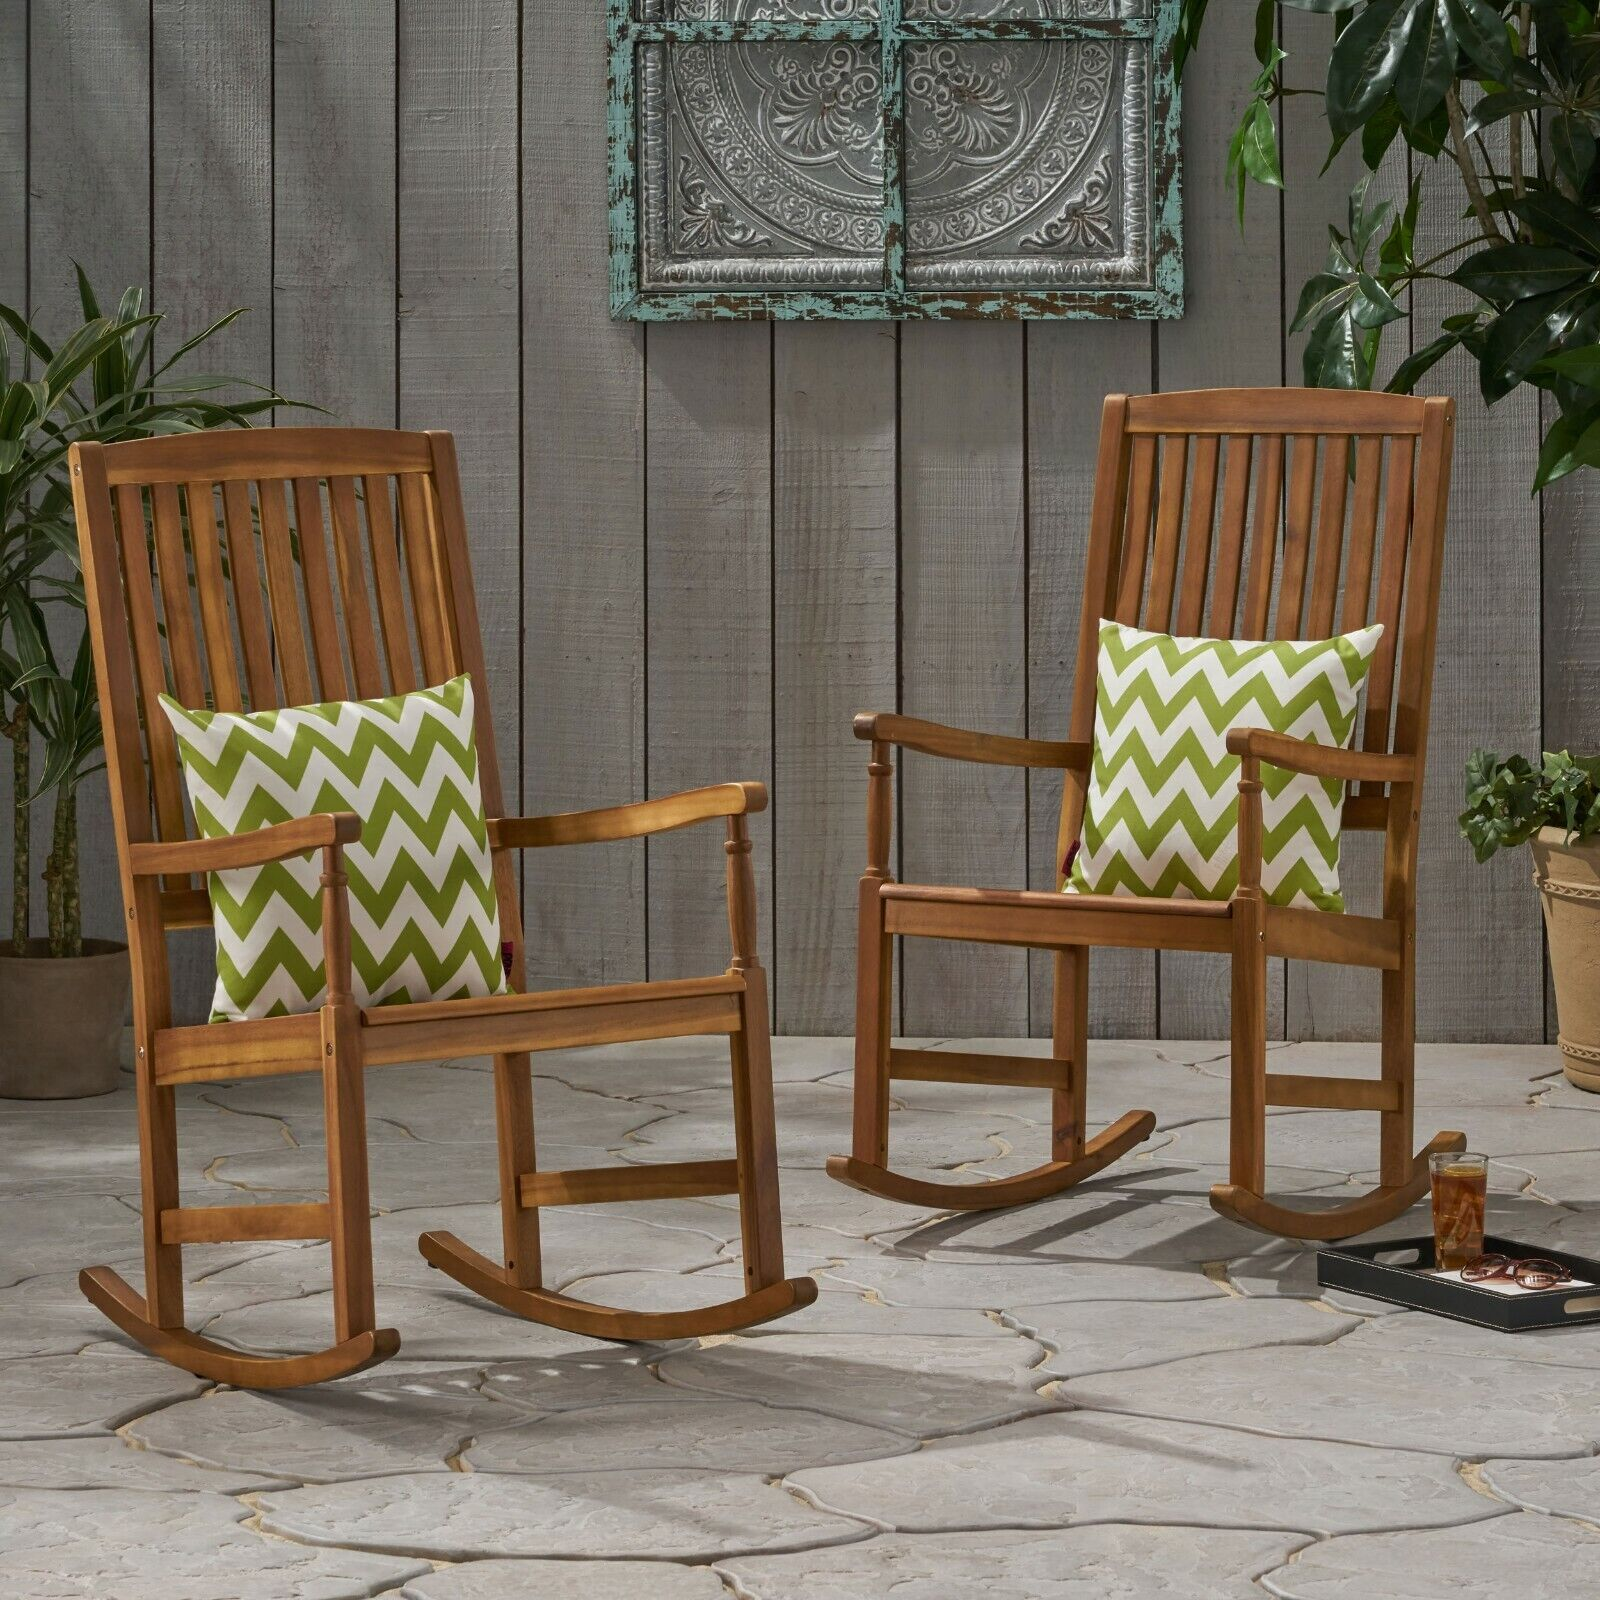 Penny Outdoor Acacia Wood Rocking Chairs (Set of 2) Home & Garden